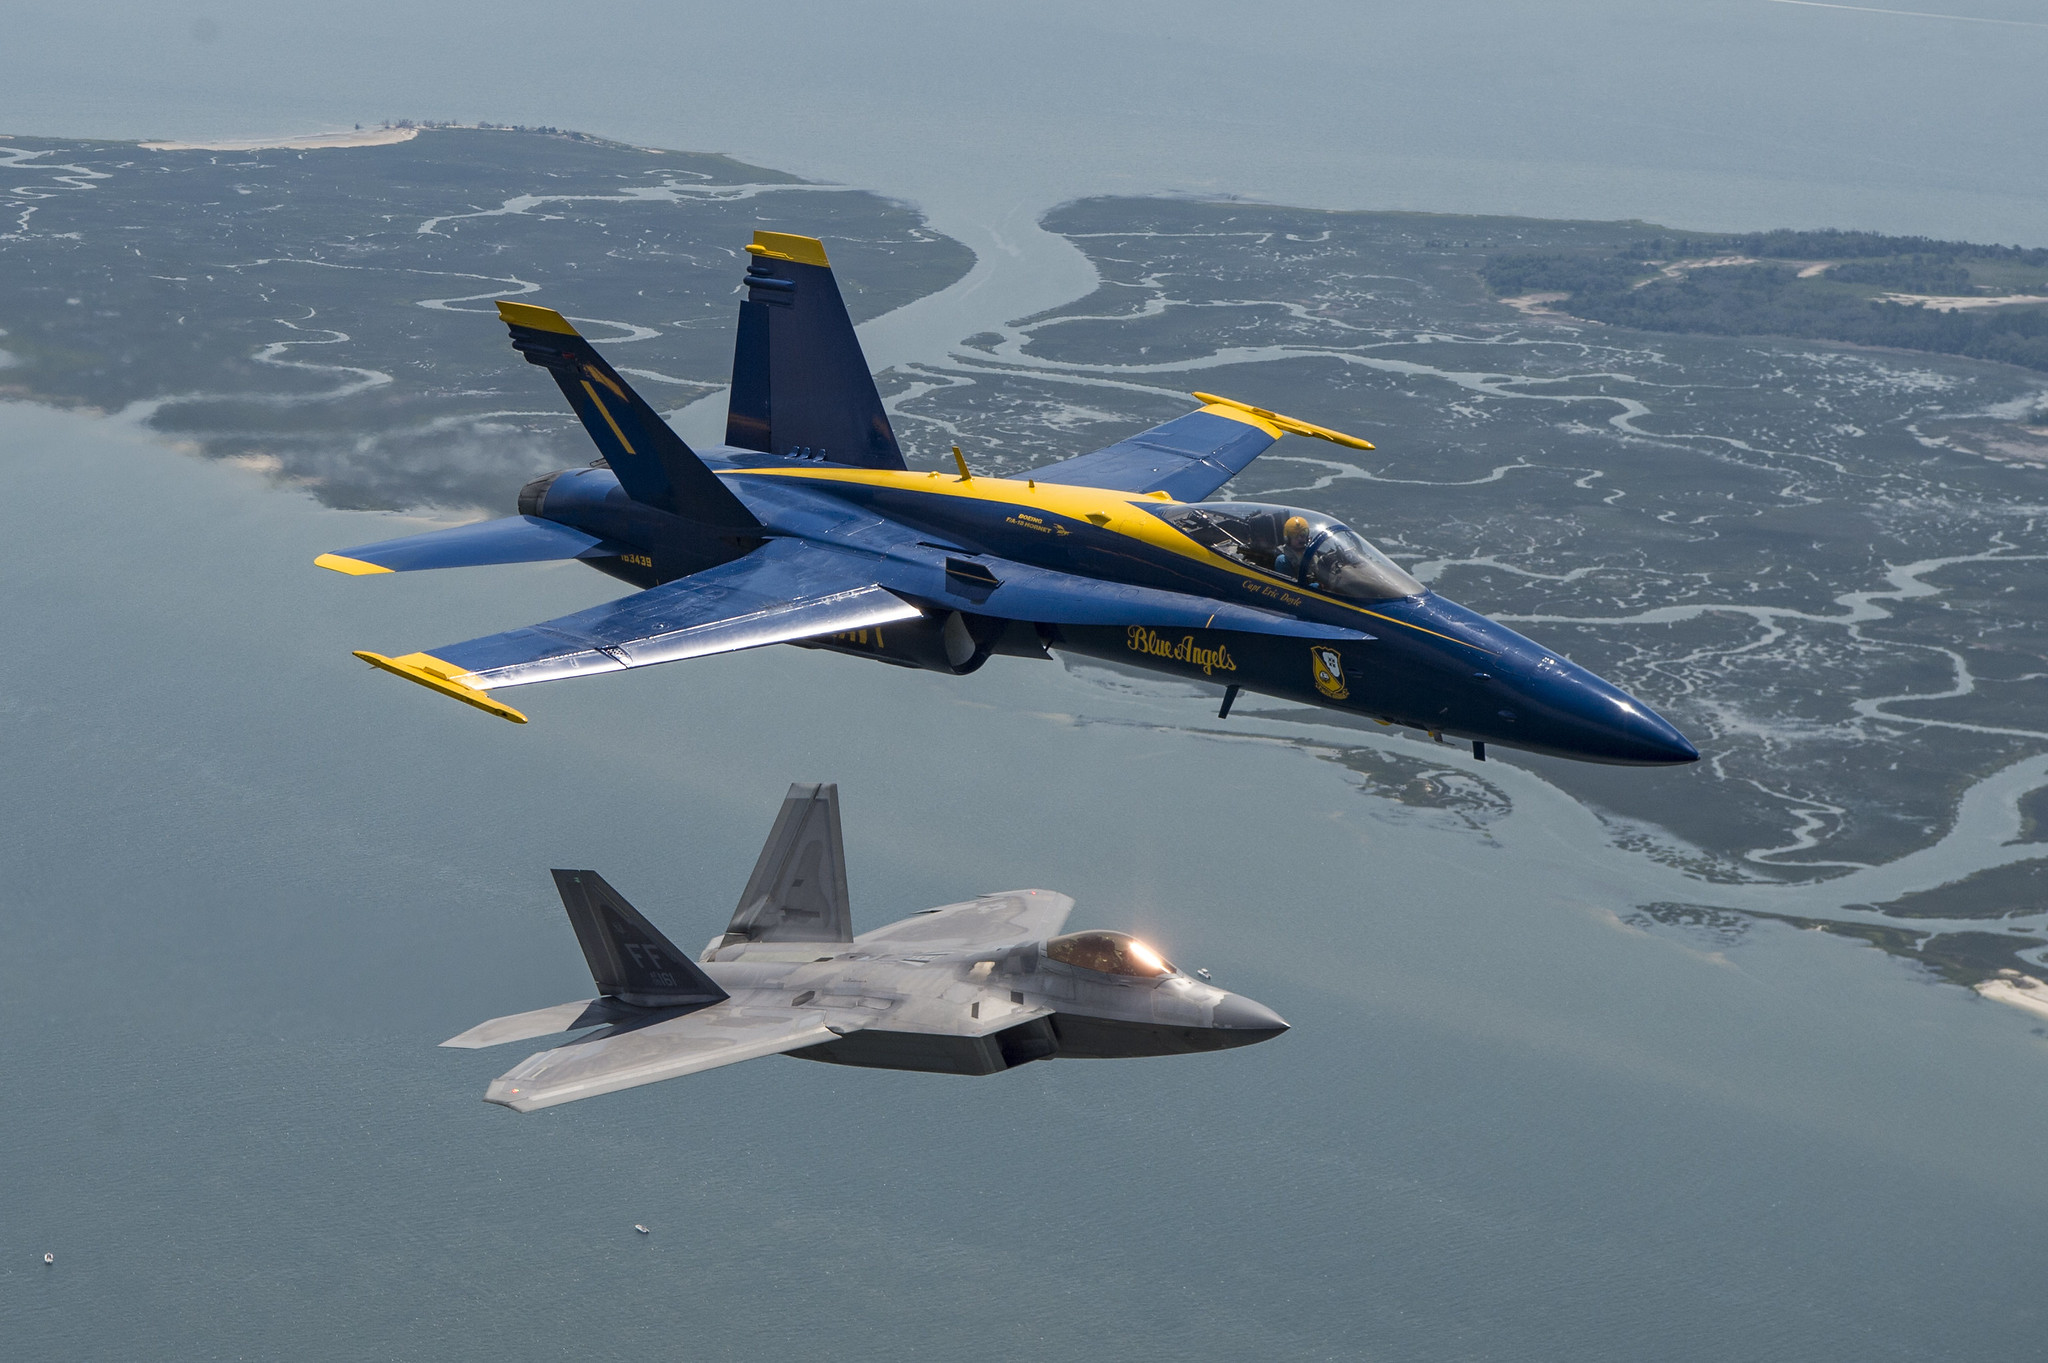 Capt. Eric Doyle, commanding officer of the U.S. Navy flight demonstration squadron, the Blue Angels, flies in formation with an F-22 Raptor assigned to the U.S. Air Force's F-22 Raptor demonstration team April 25, 2019, during a photo exercise above Marine Corps Air Station Beaufort. (Mass Communication Specialist 2nd Class Christopher Gordon/Navy)